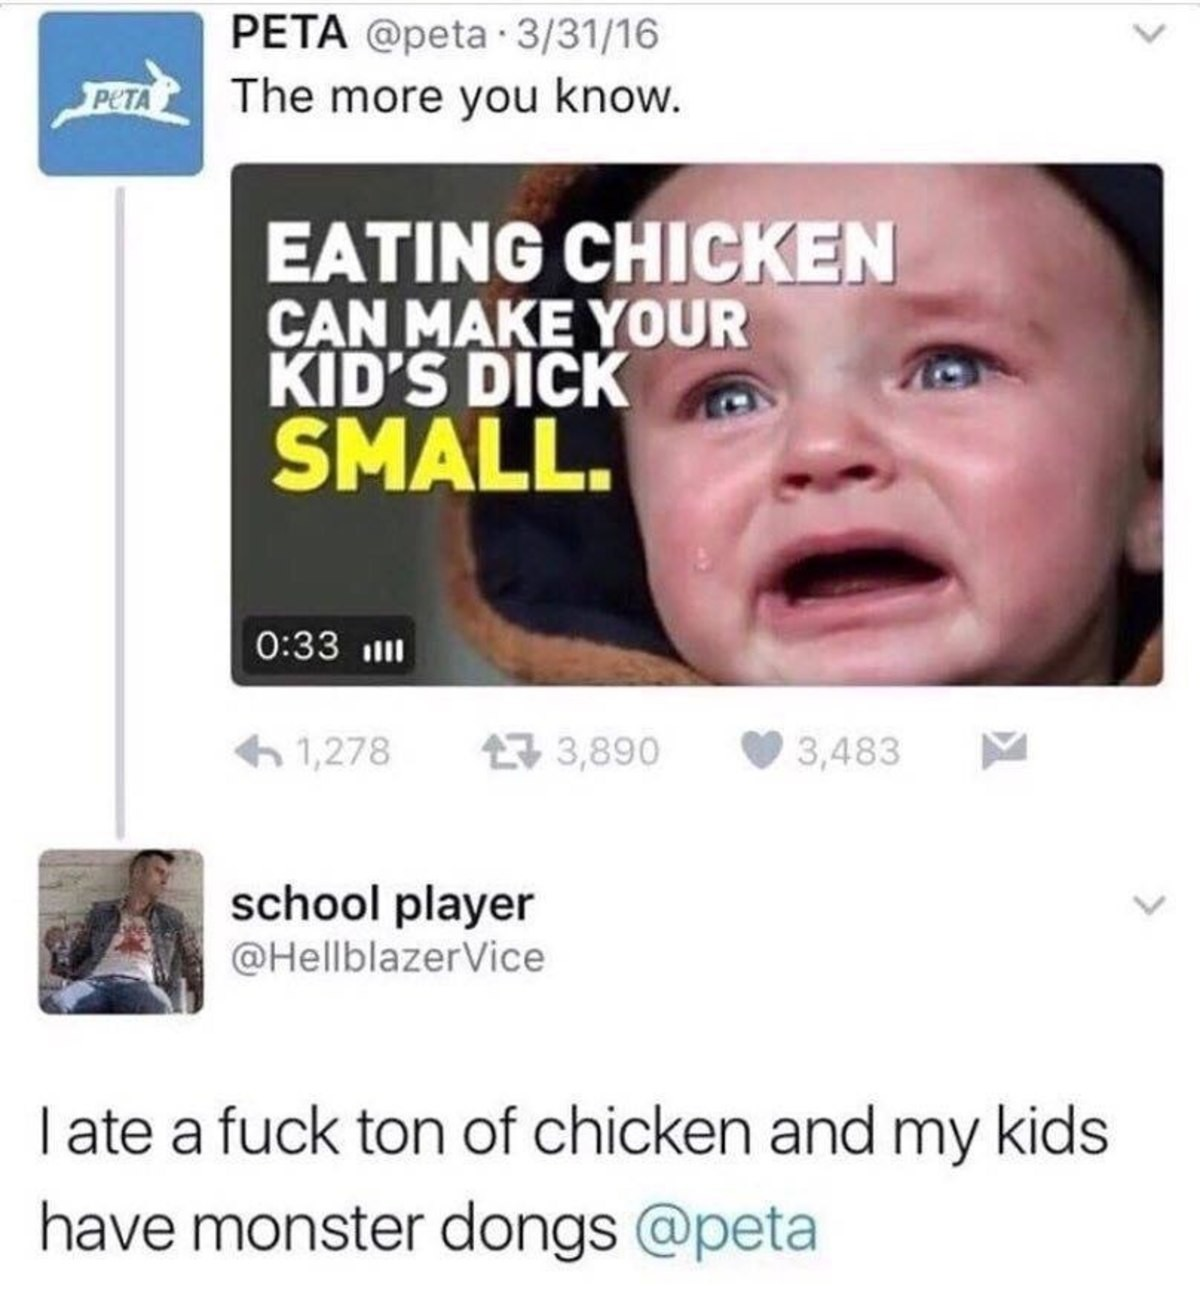 PETA. . The more you know. EATING CHICKEN CAN MAKE YOUR KID' S DICK tiltle A school player N, p' I ate a fuck ton of chicken arg:) t' Til/ kids have) monster do